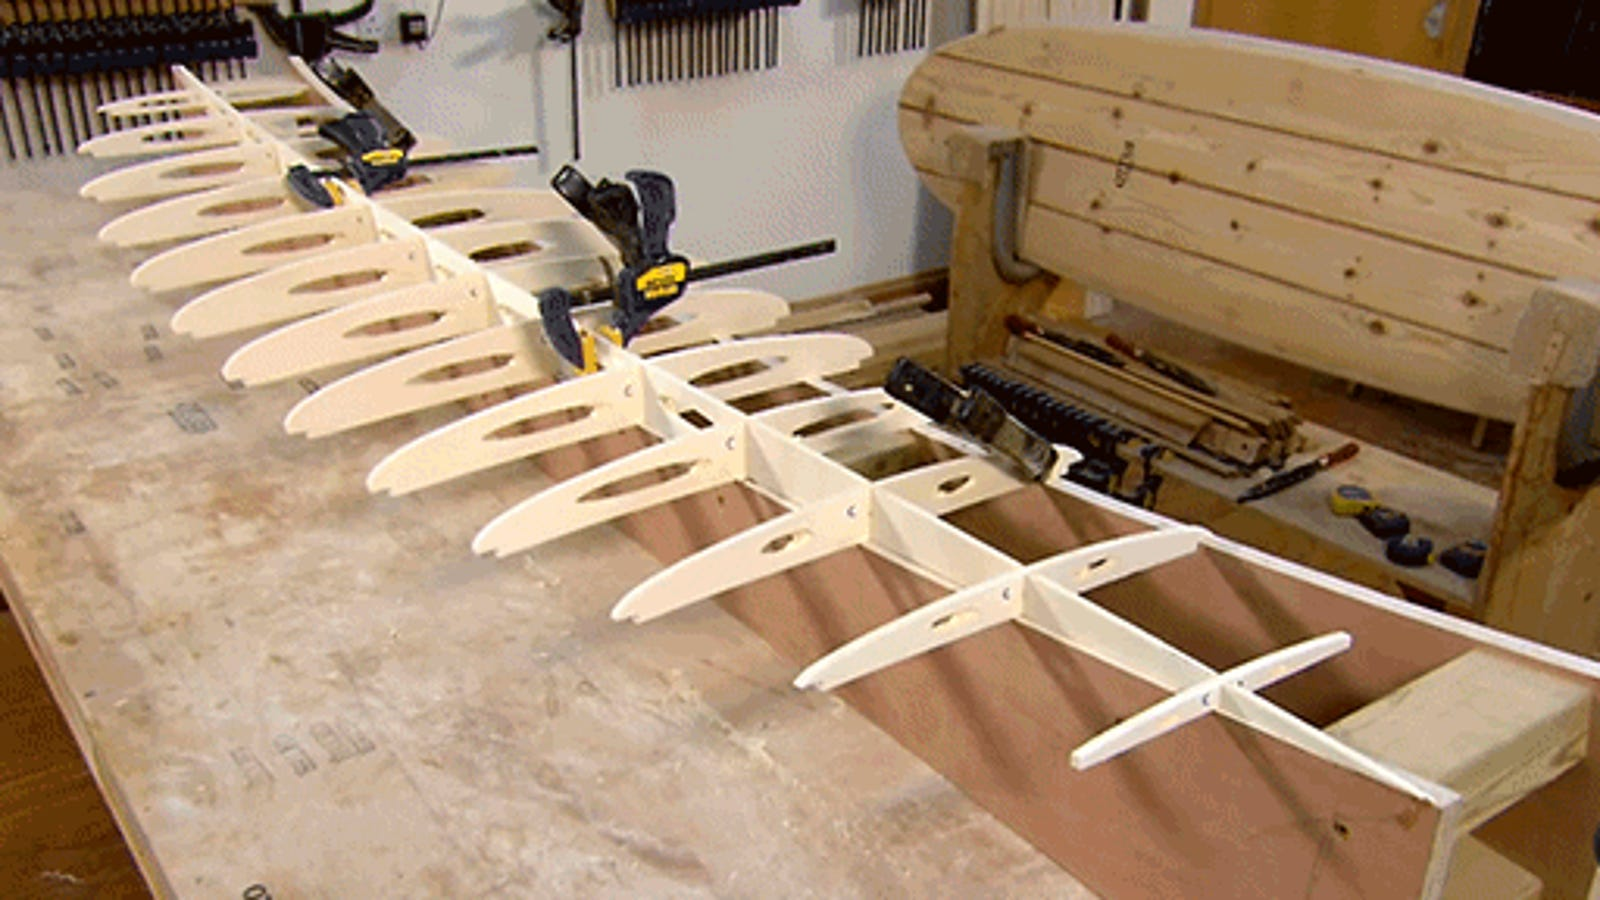 Making a Hollow Wooden Surfboard Looks Like It's Totally Worth It